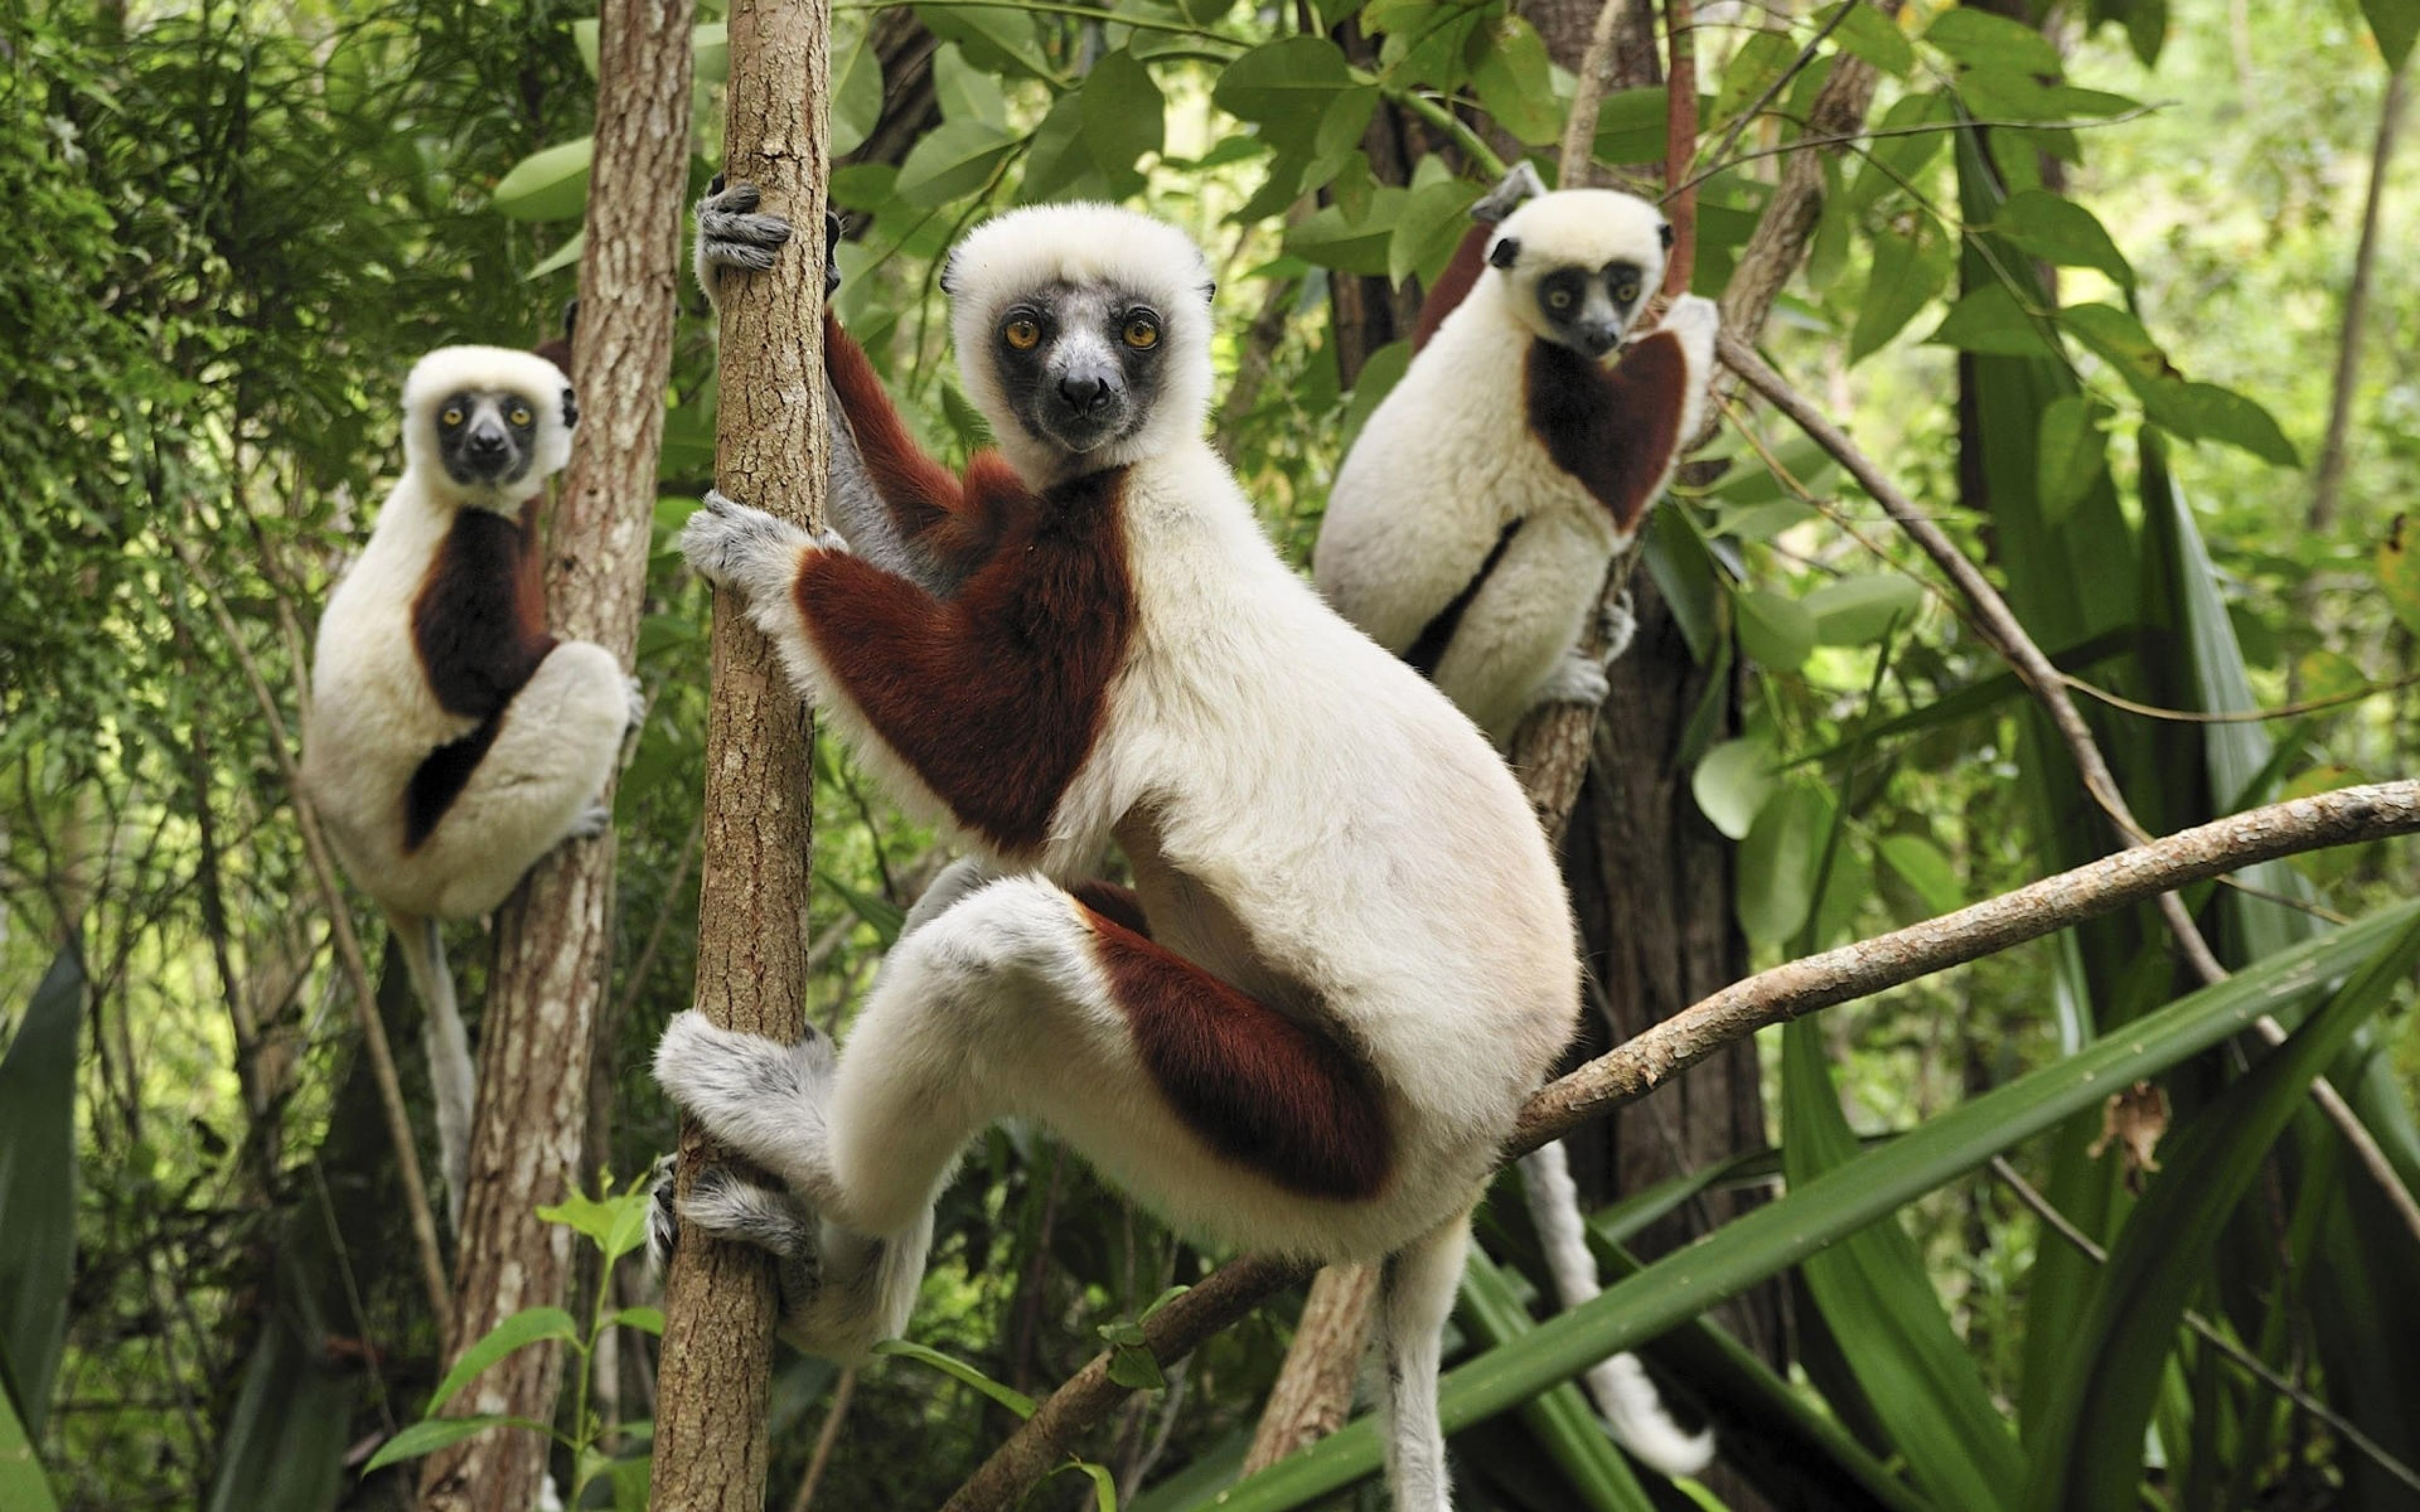 Lemur widescreen for desktop